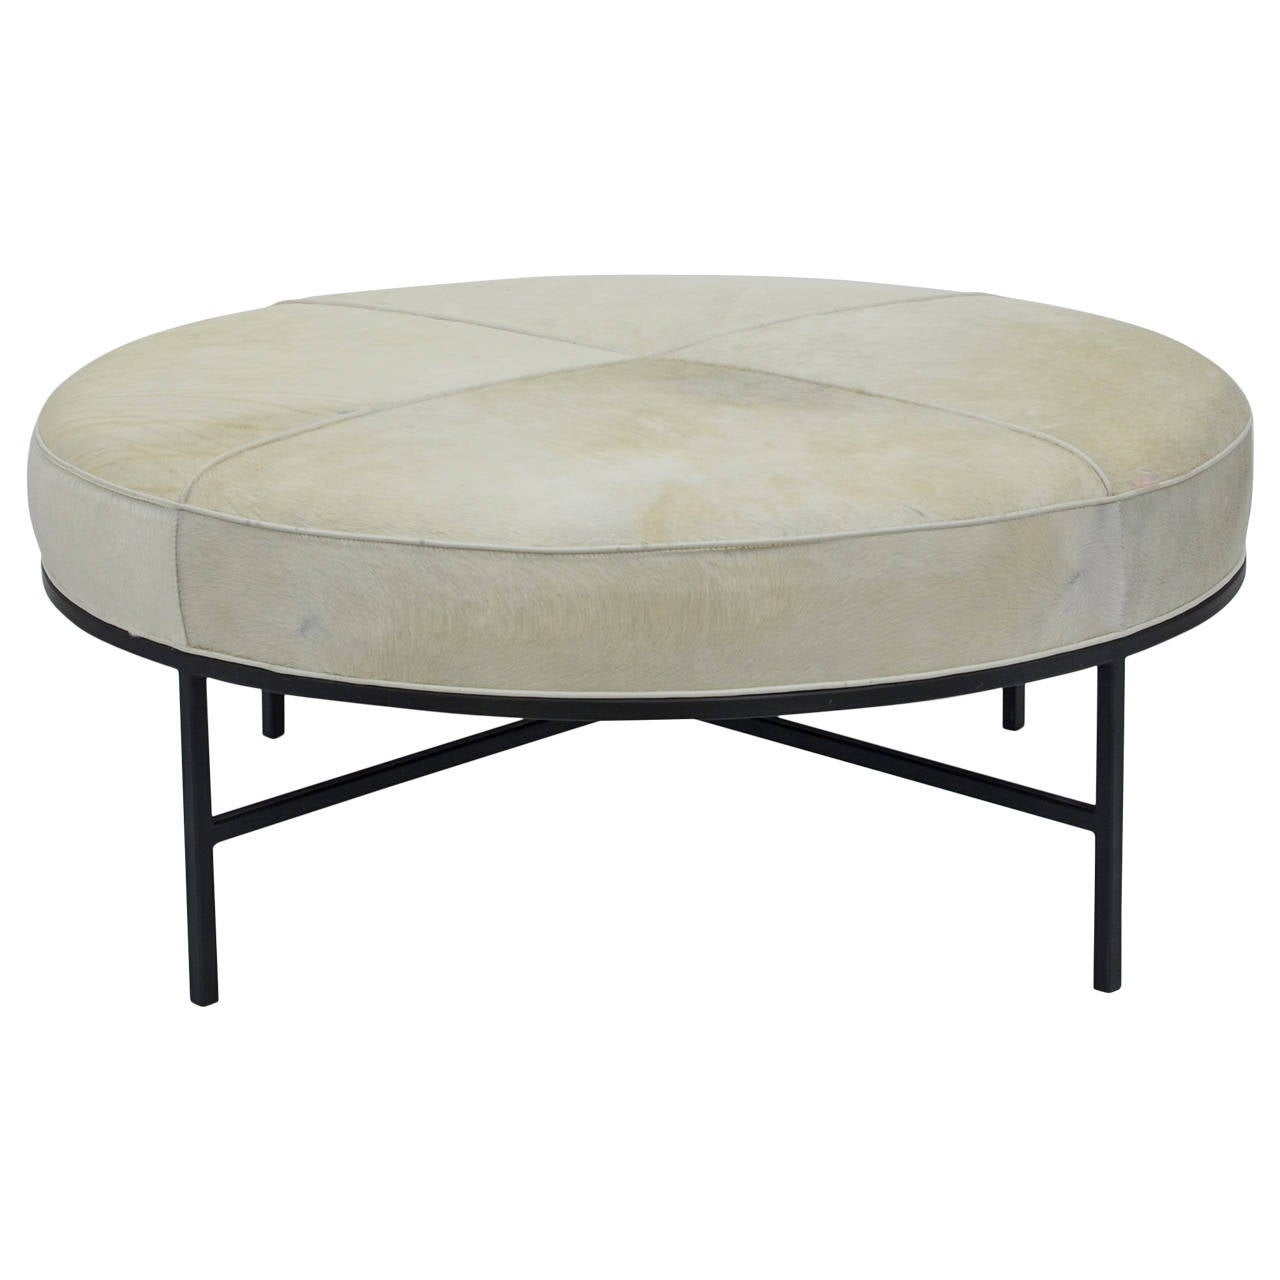 upholstered ottoman coffee table images